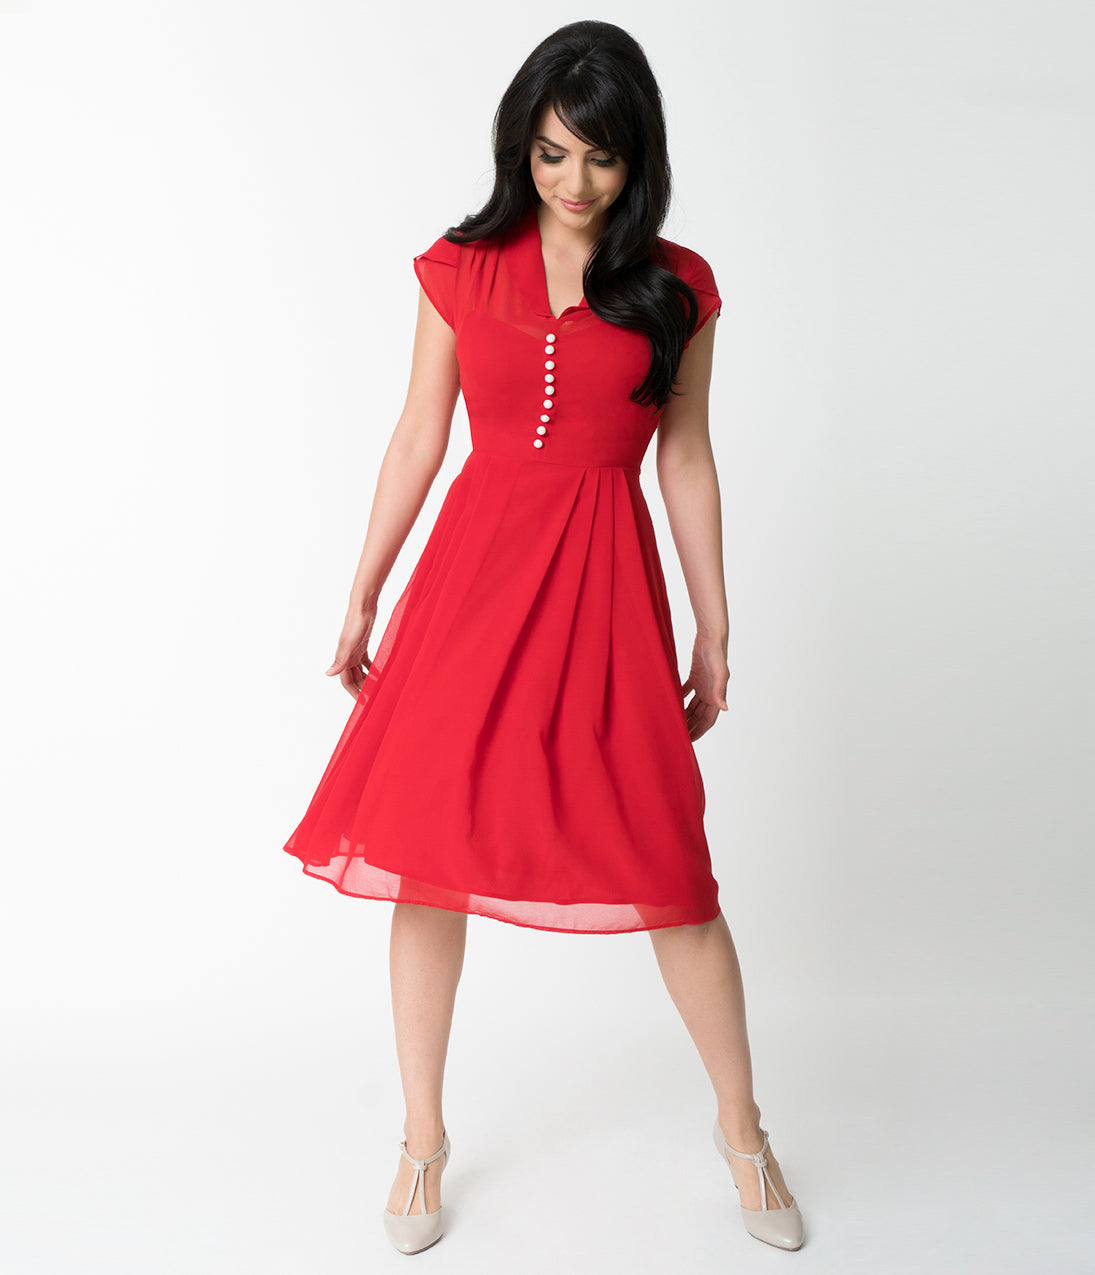 Pin Up Dresses | Pin Up Clothing Hell Bunny Red Chiffon Cap Sleeve Paige Flare Dress $92.00 AT vintagedancer.com